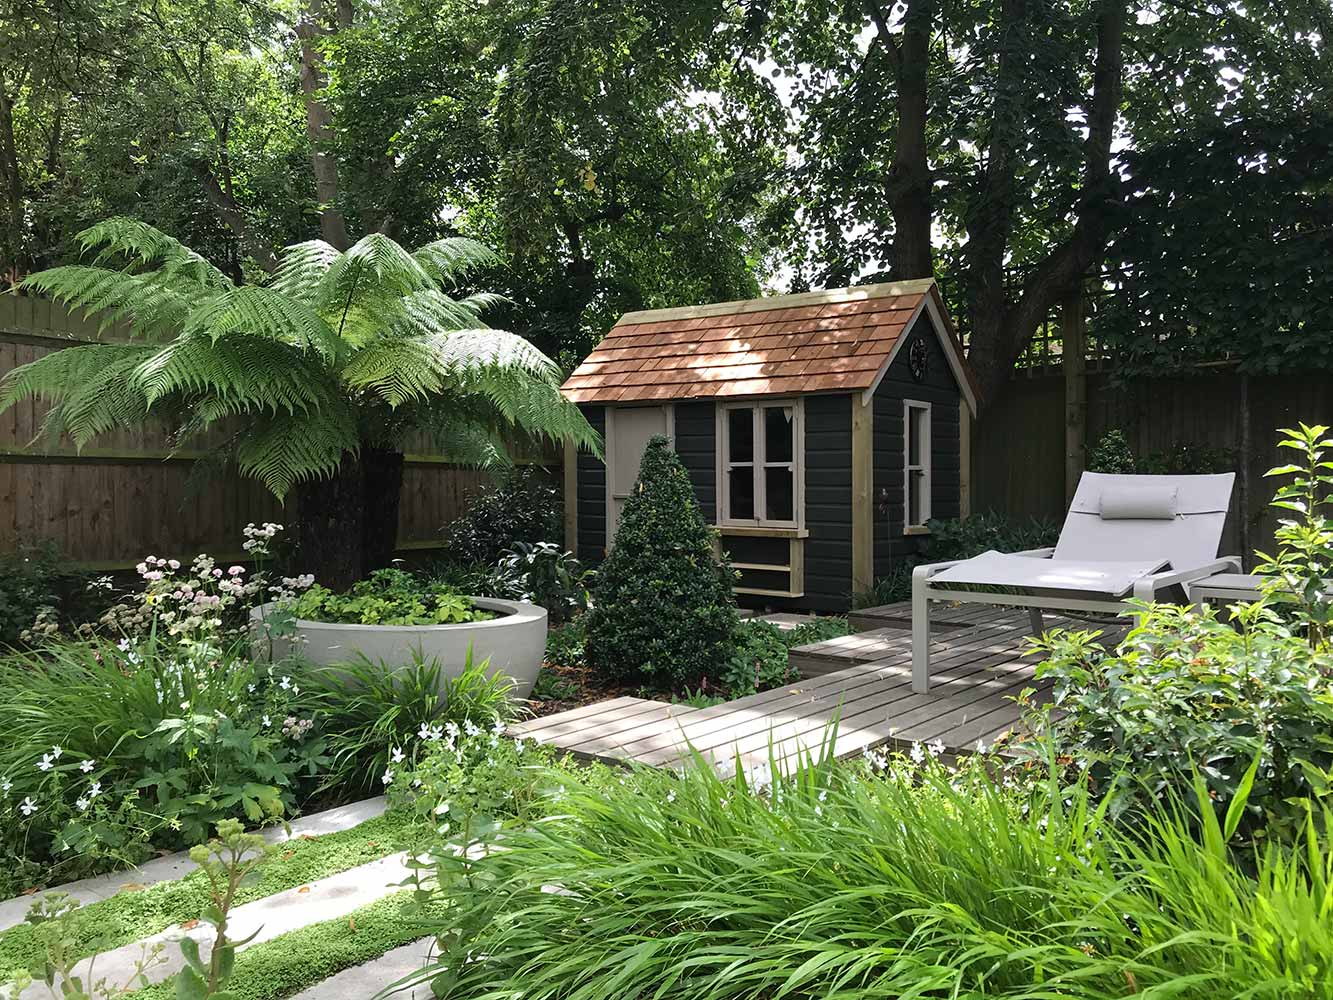 Thorndown-Yew-Green-and-Tor-Stone-Wood-Paint-on-Wood-and-Space-Shed